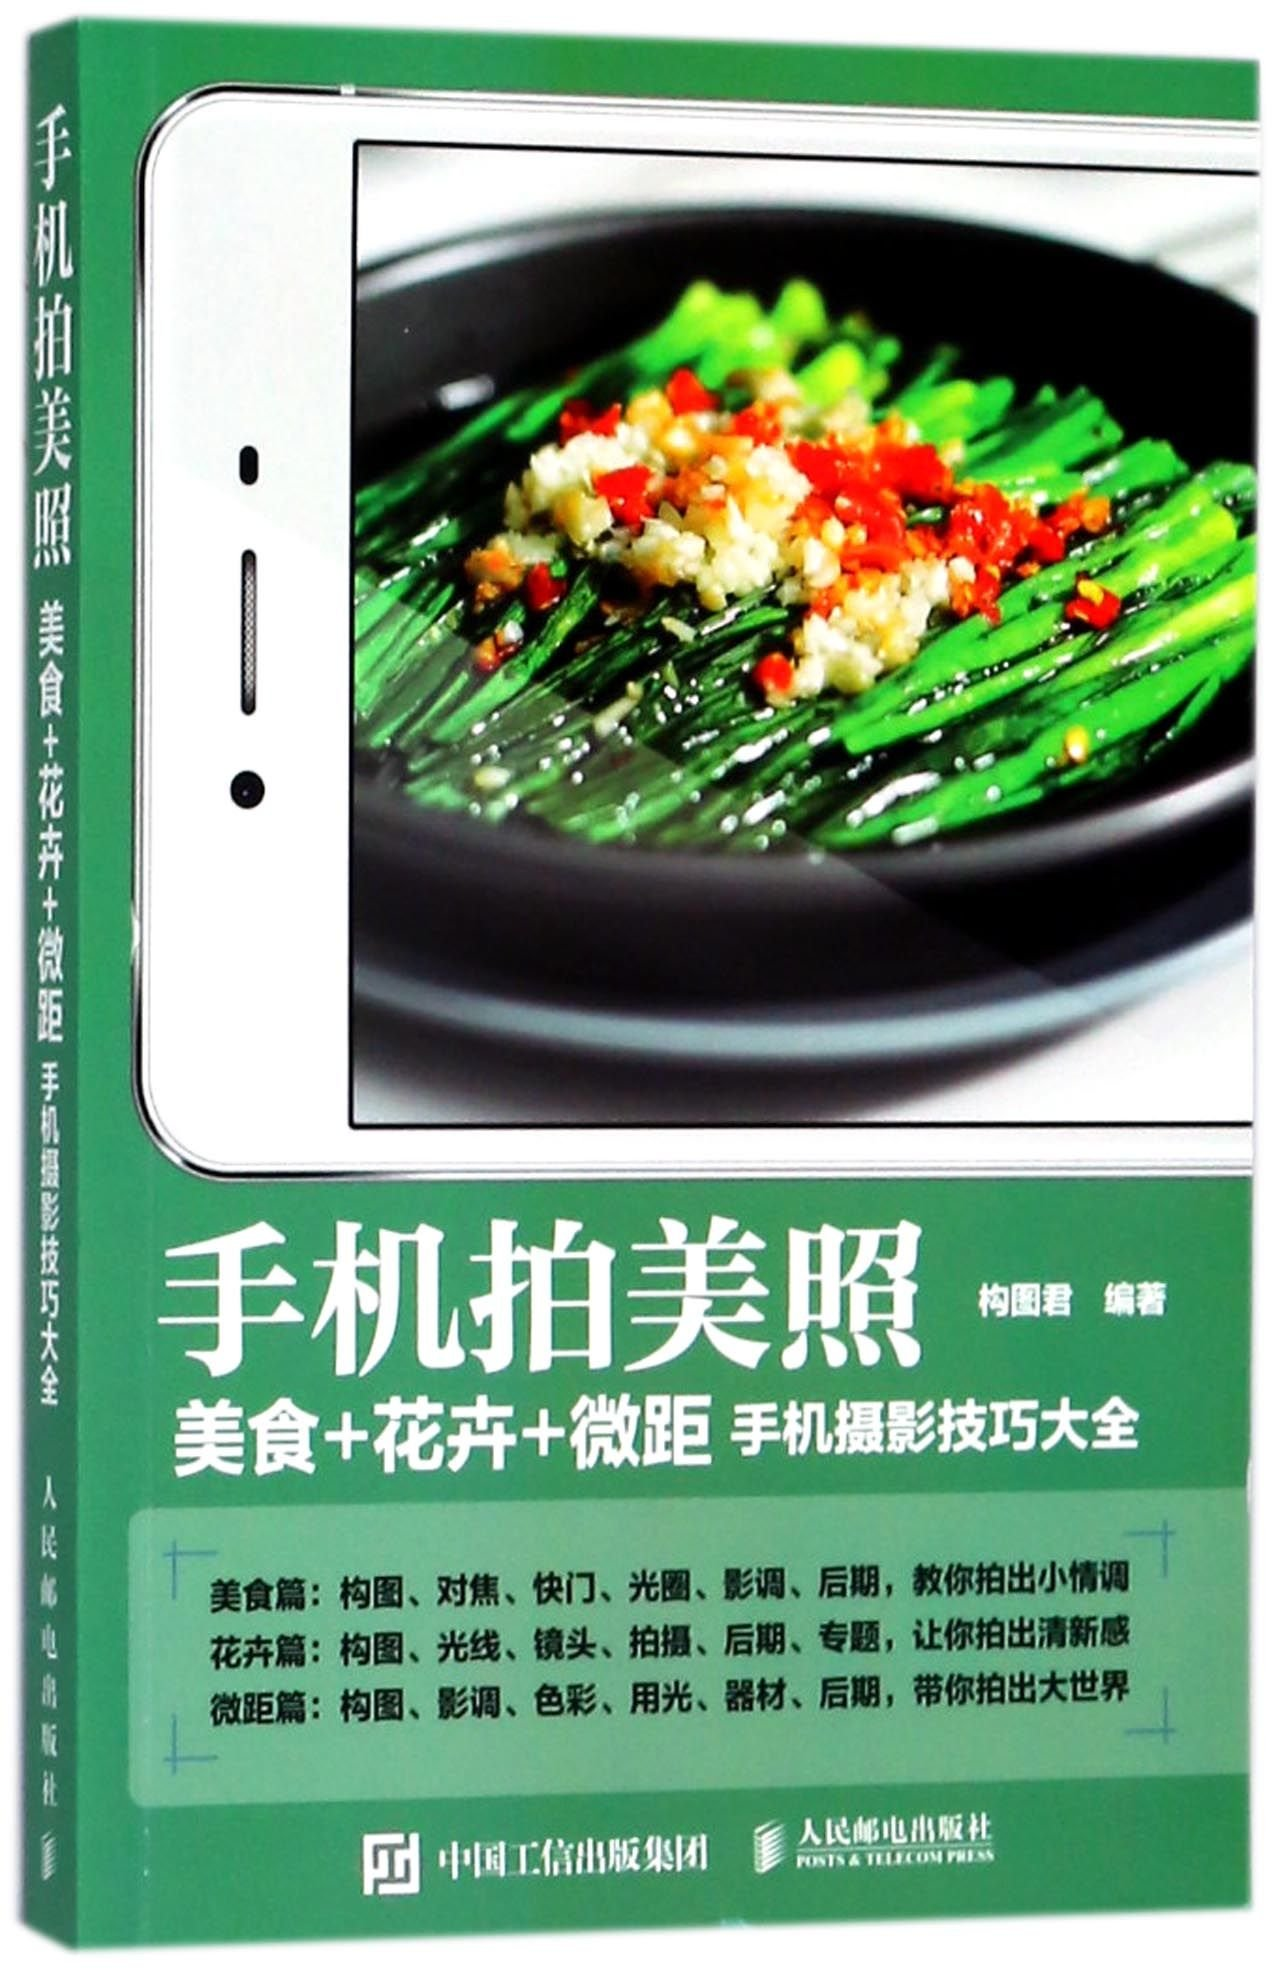 Read Online Photos by Phones (Food & Flowers &Skills of Microspur Phone Photography) (Chinese Edition) pdf epub